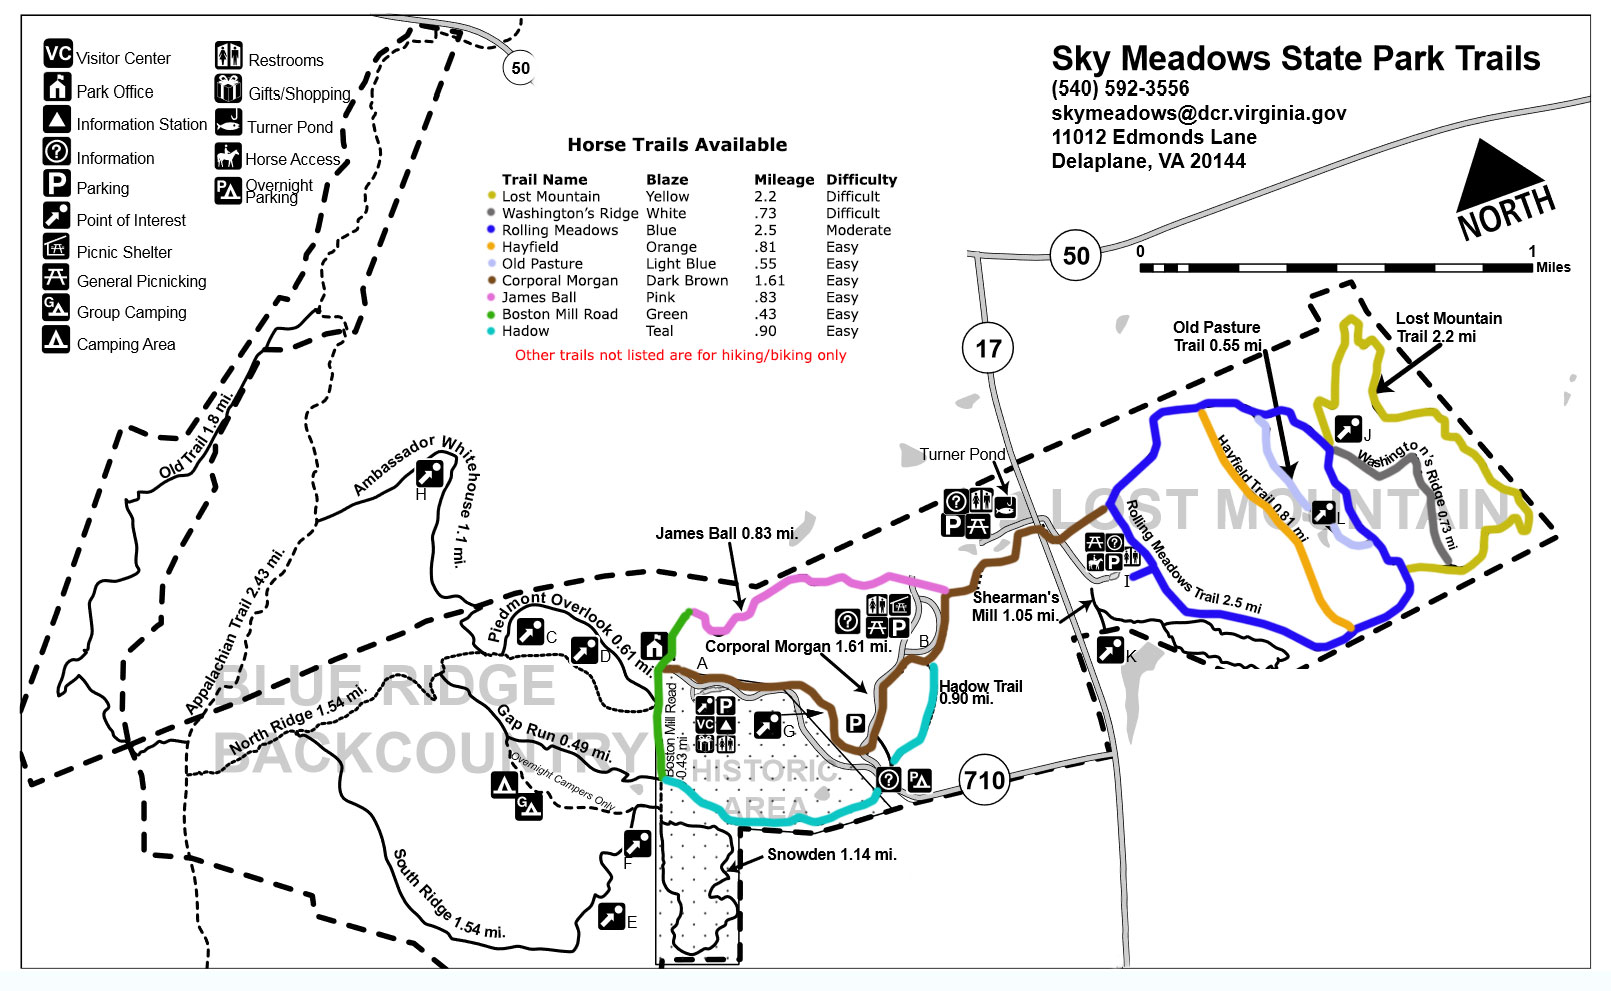 Trail Maps White Oak Stables